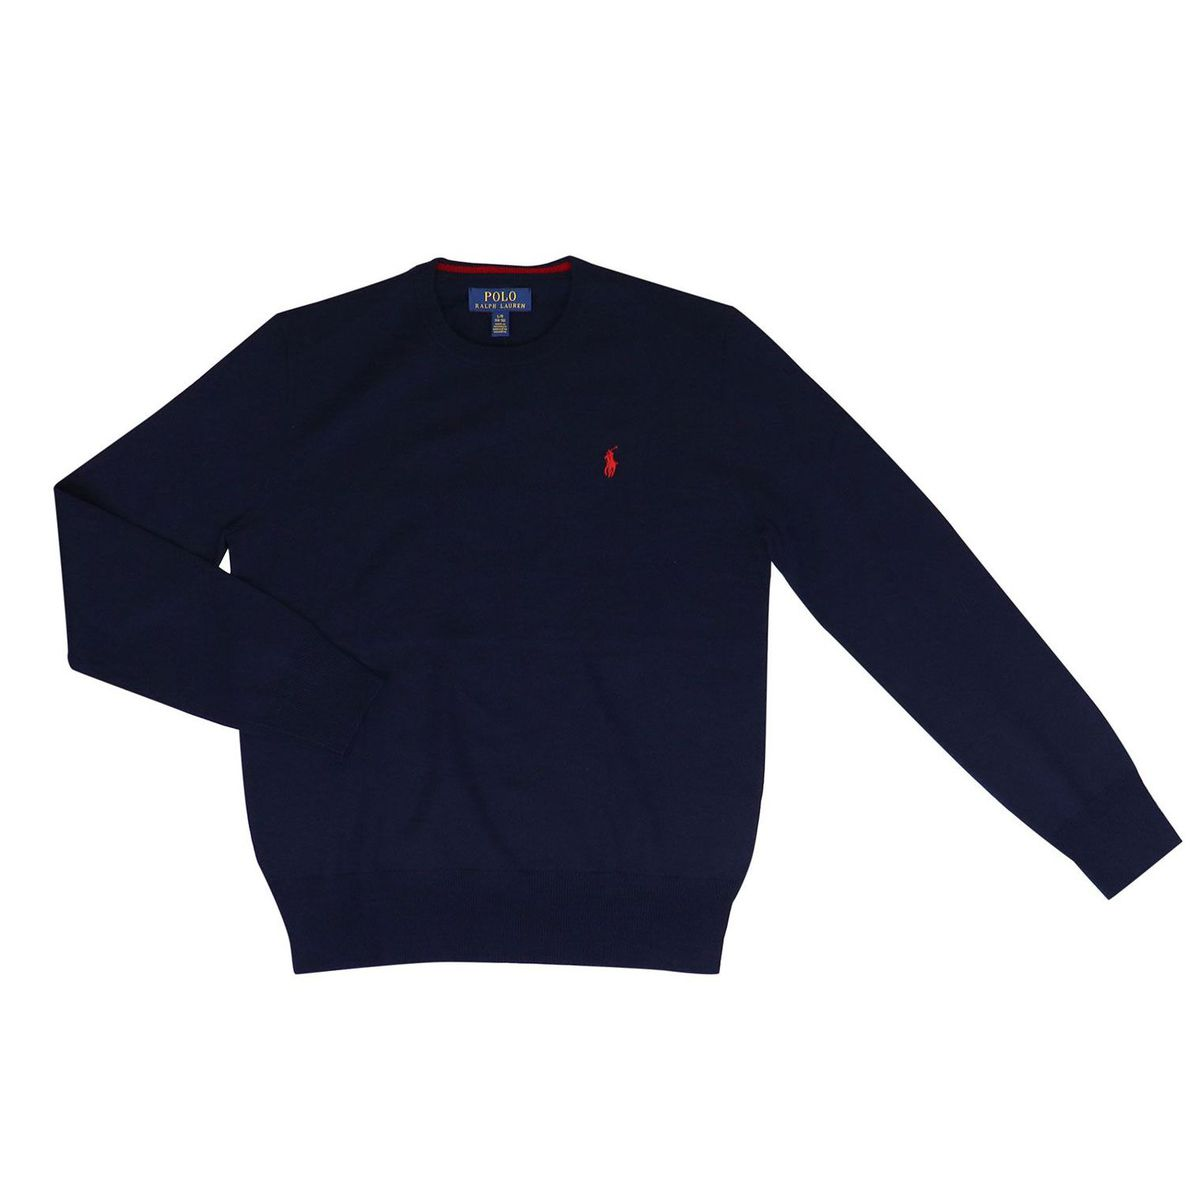 Crewneck wool pullover with contrast logo Blue Polo Ralph Lauren